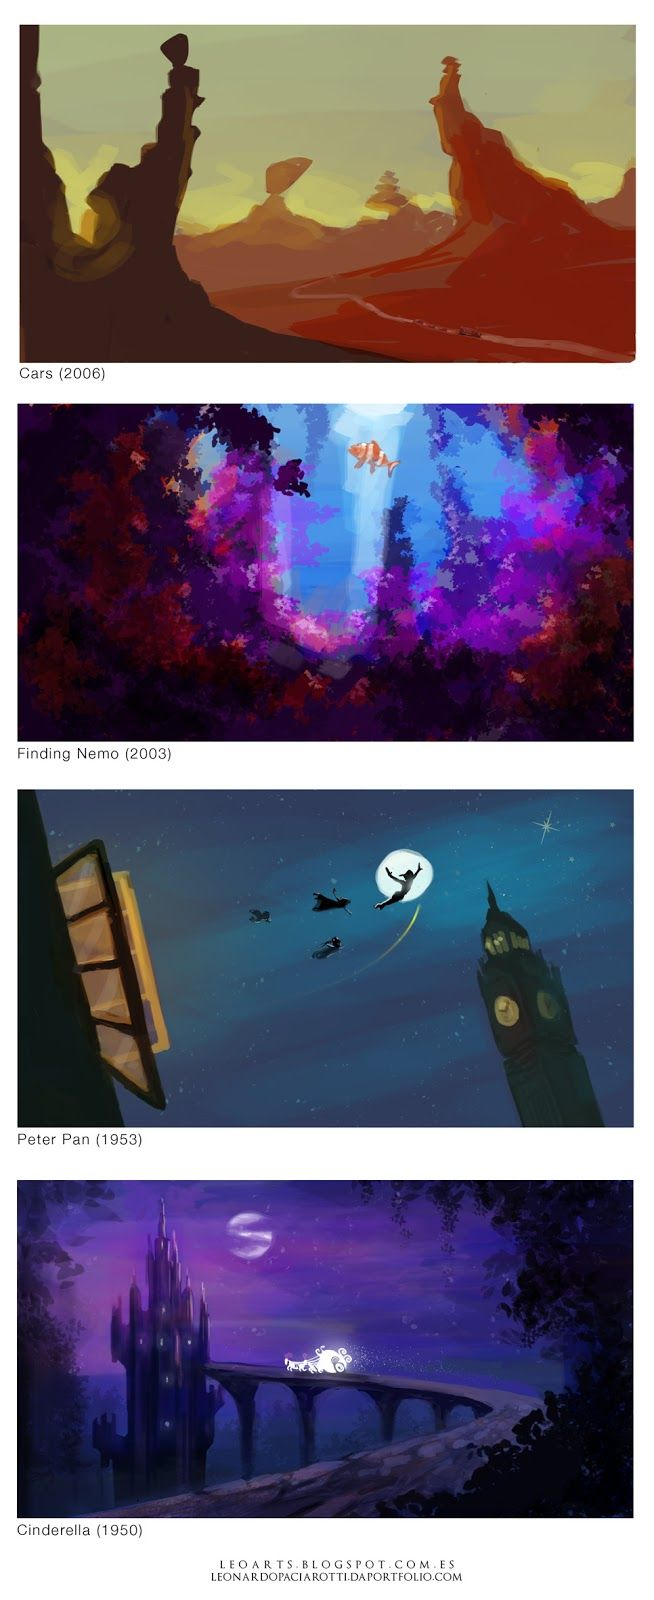 Disney Concept Art. Backgrounds.  Cars (2006),  Finding Nemo (2003),  Peter Pan (1953), Cinderella (1950).